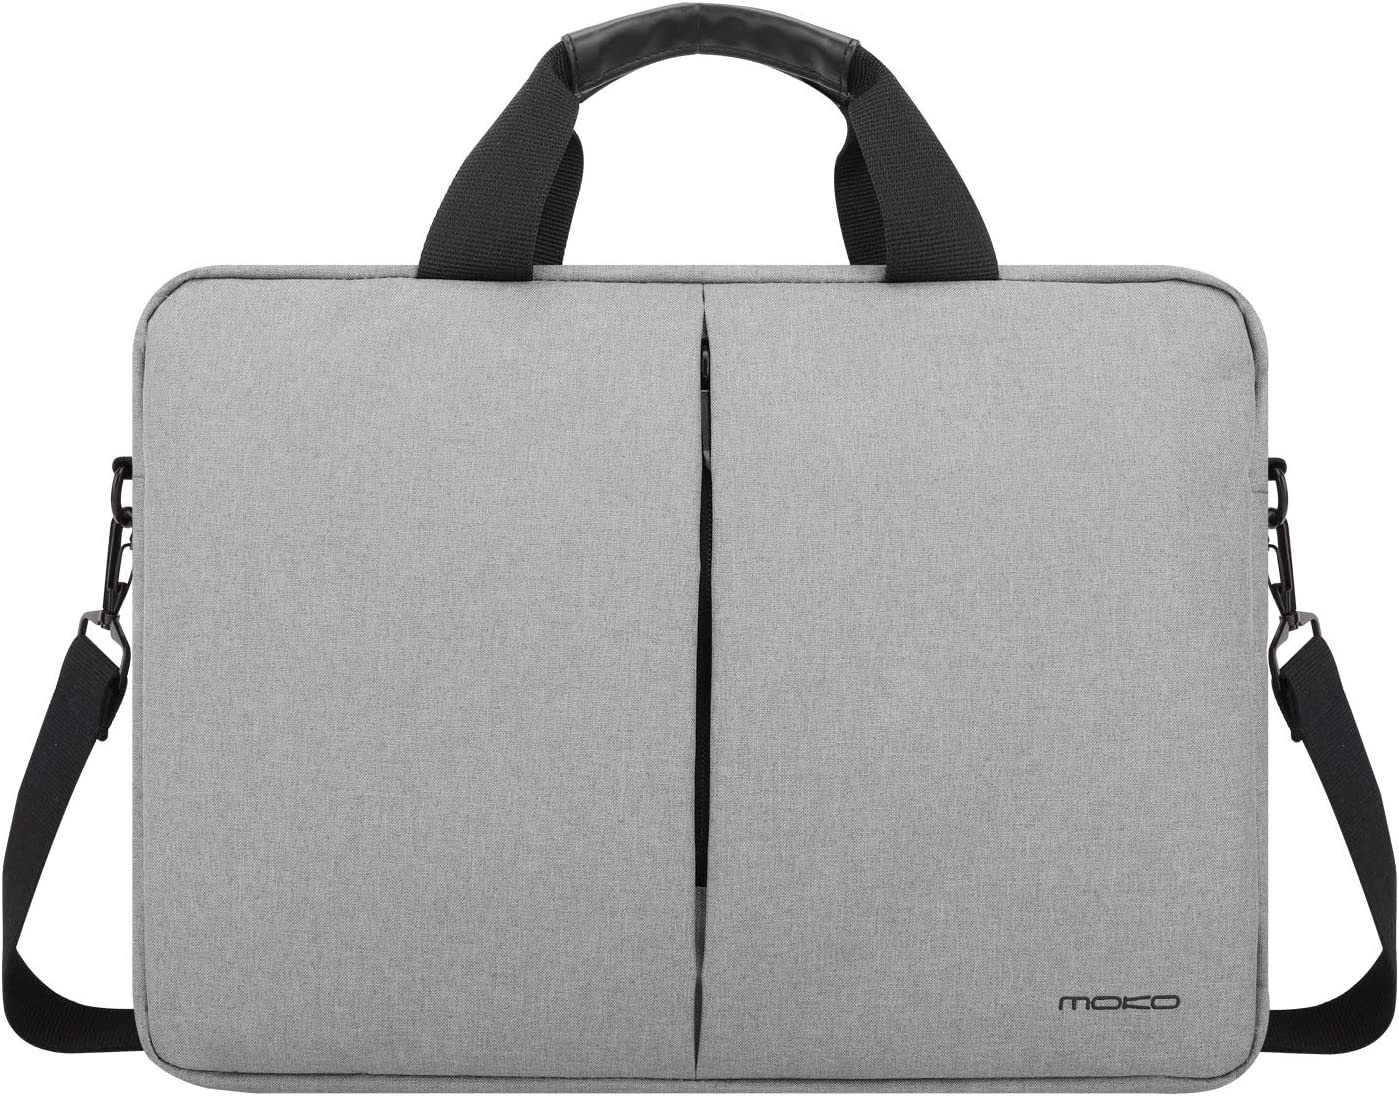 DOMISO 14 Inch Multi-Functional Laptop Sleeve Business Briefcase Messenger Bag with USB Charging Port for 14 Laptop//Chromebook//Ultrabook//Apple//Lenovo//HP//Dell//ASUS//Acer Black Zipper